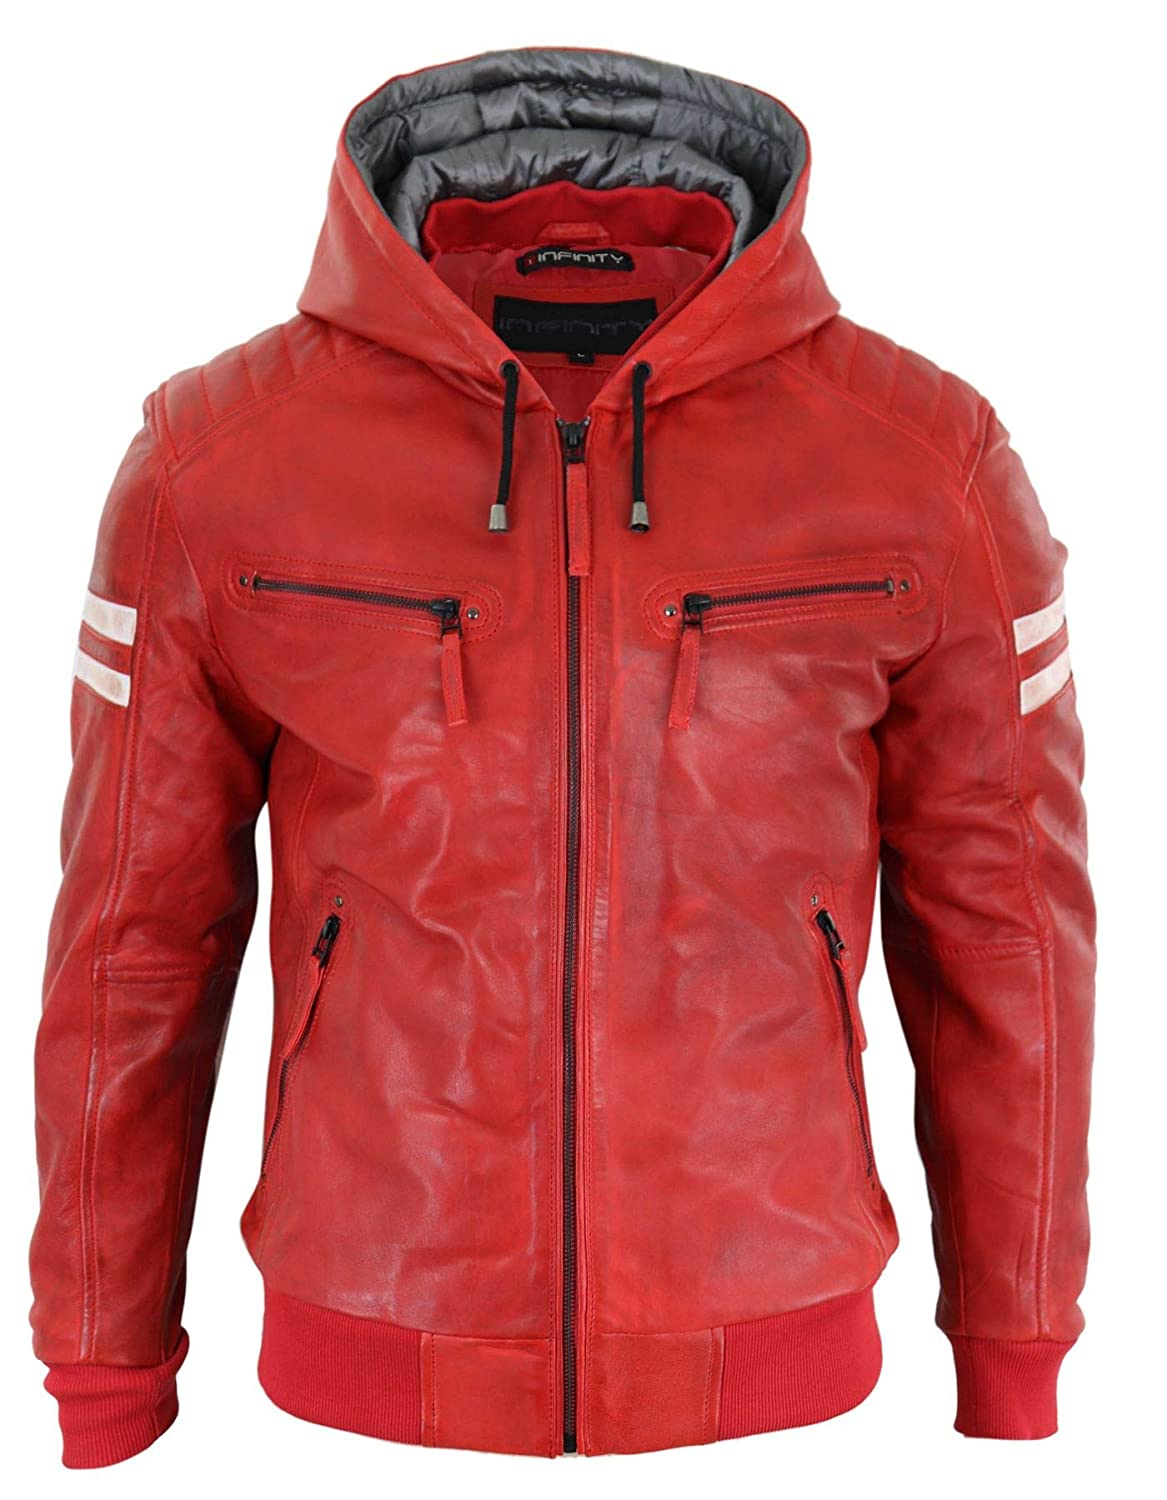 Mens Black Hood Real Leather Bomber Jacket Red Stripes Quilted Slim Fit Casual aviatrix